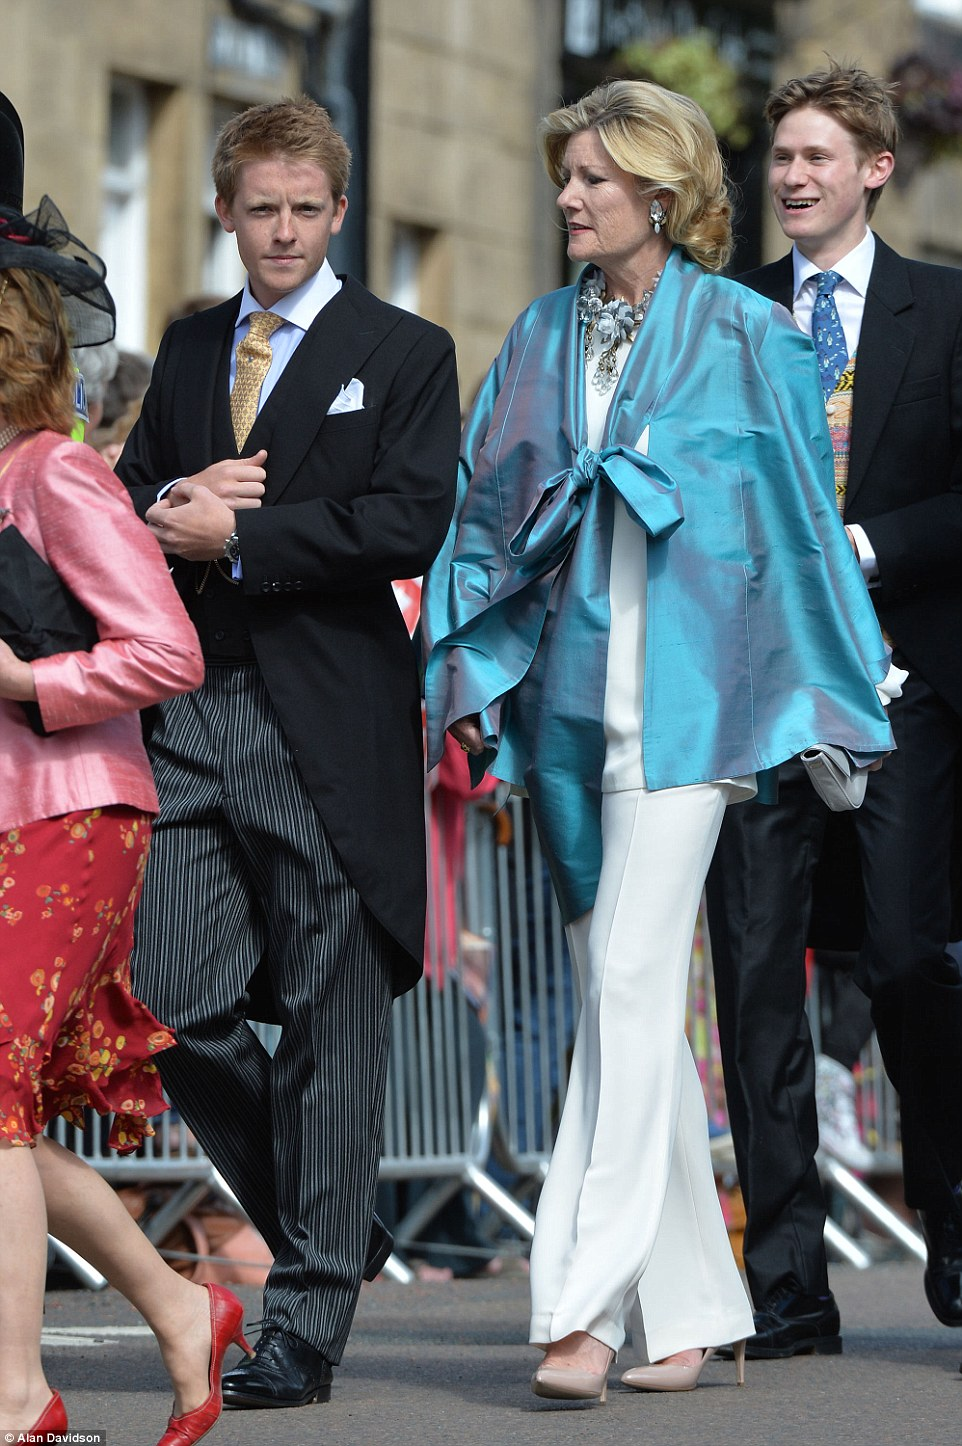 Duke of Westminster: Knight, Military, Royals, Prostitutes ...